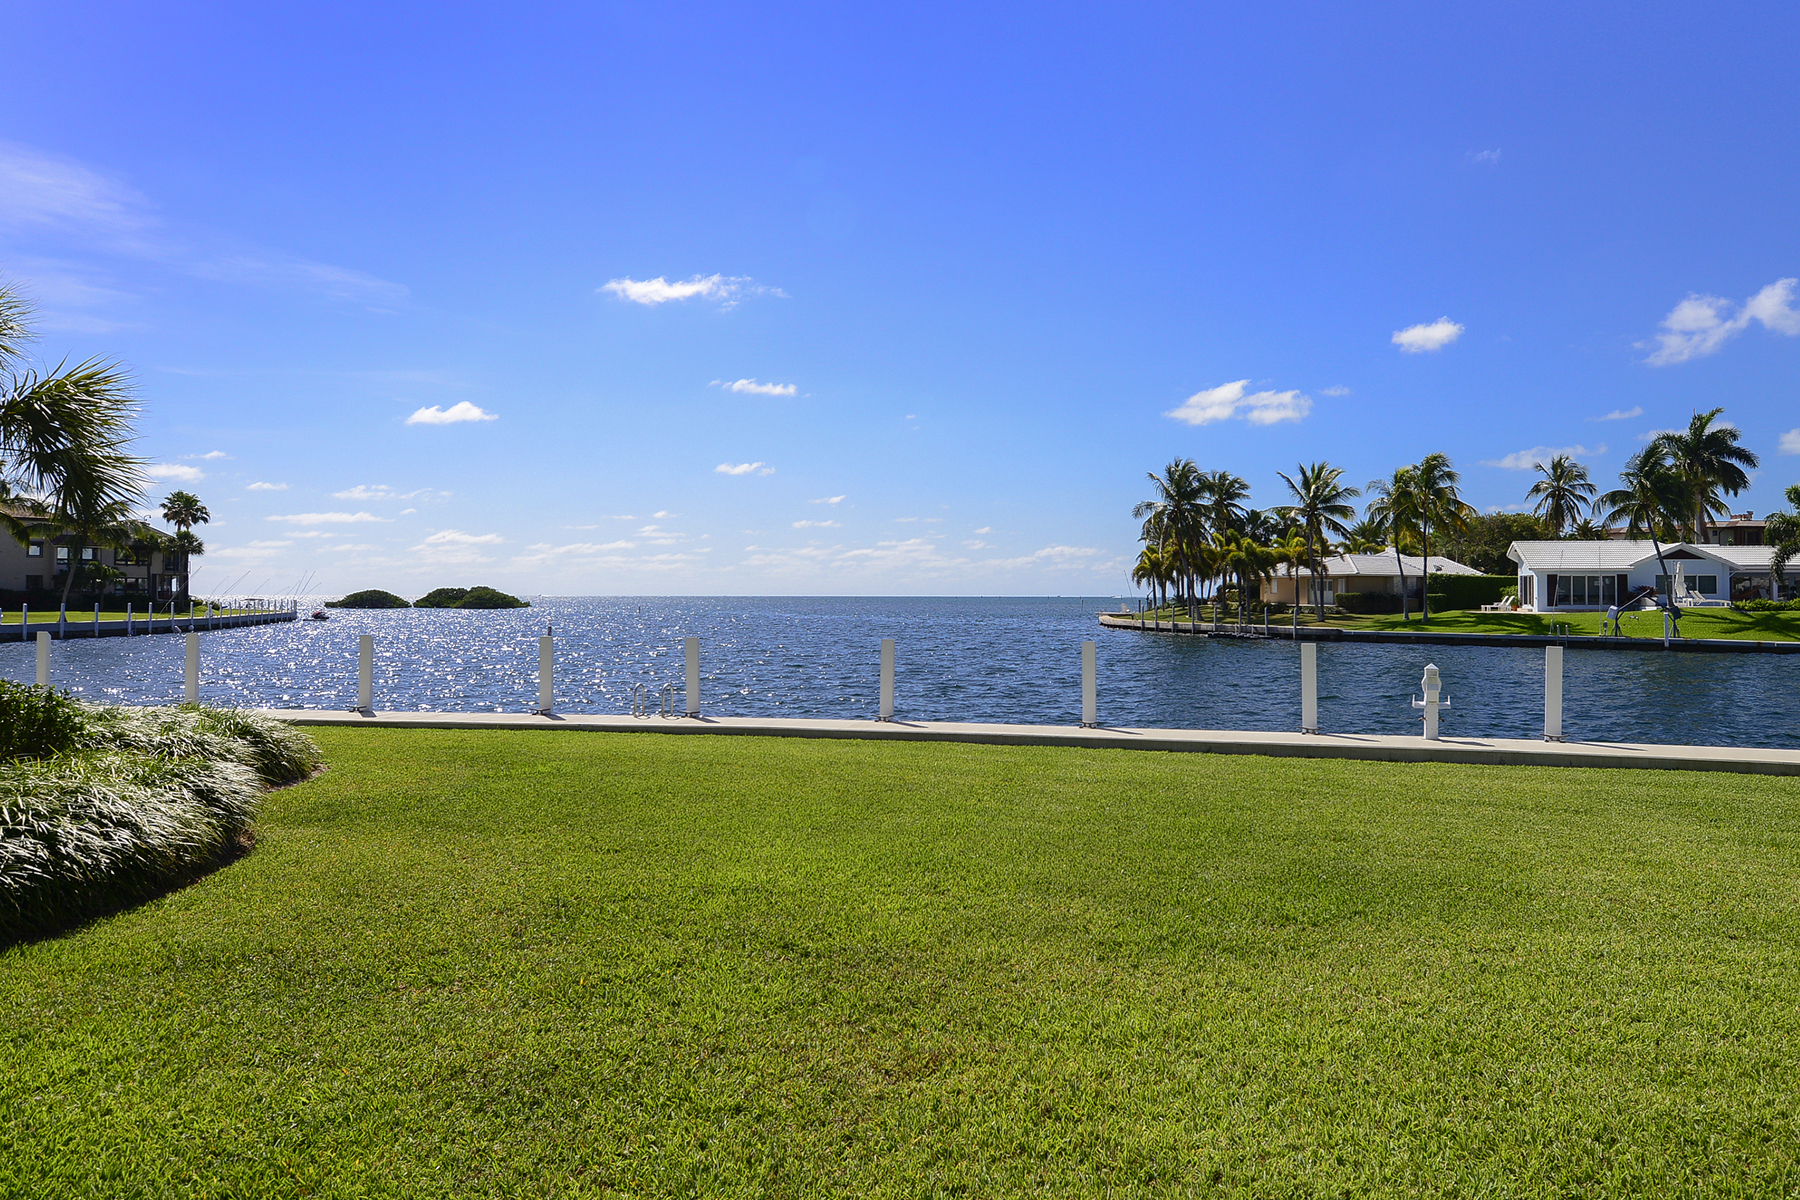 Condominium for Sale at Oceanfront Condominium Living at Ocean Reef 85 Snapper Lane, Unit B Key Largo, Florida, 33037 United States